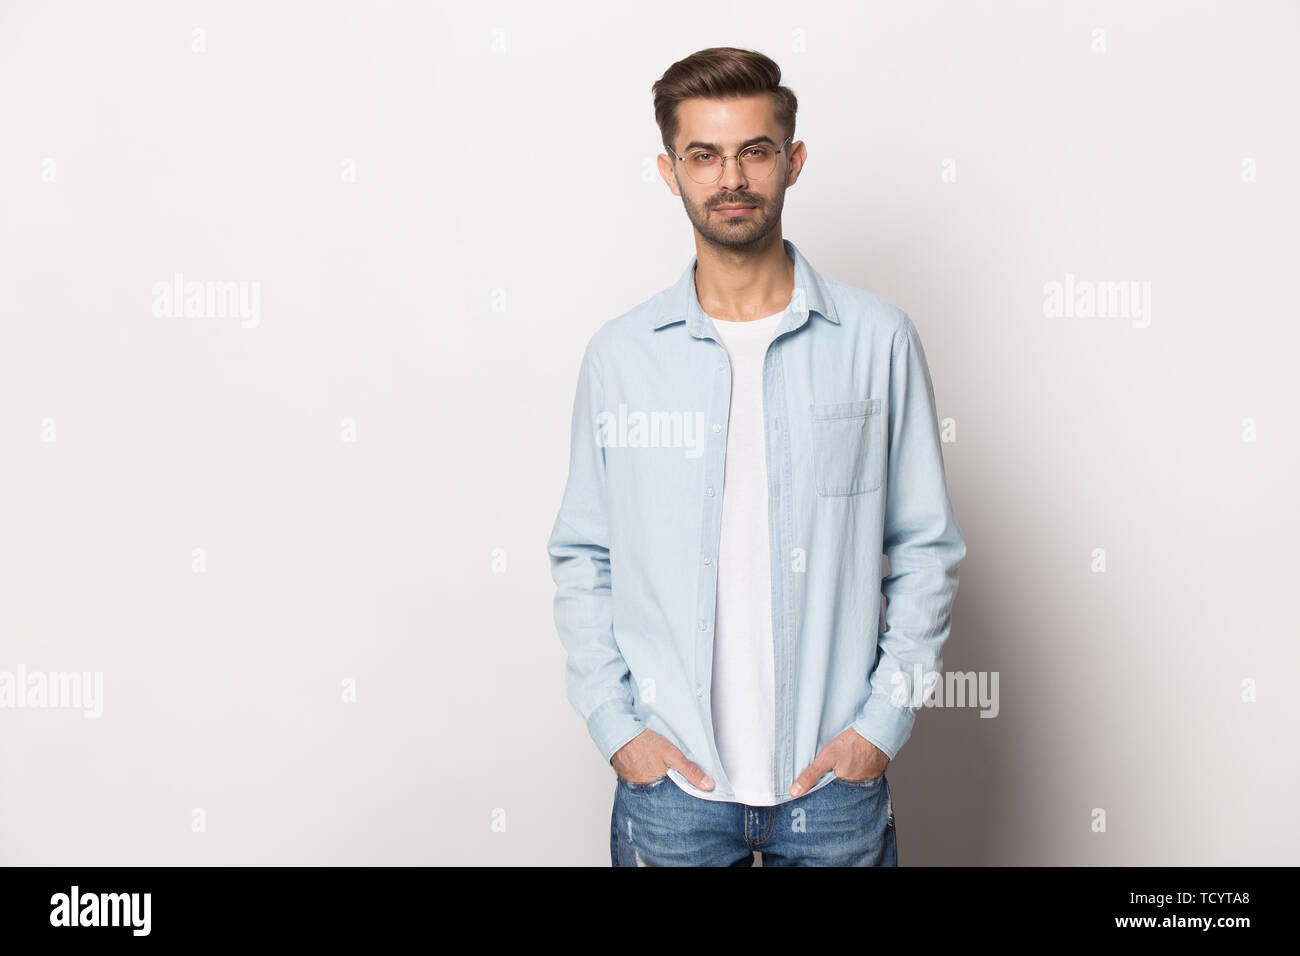 Serious millennial guy wearing glasses casual clothes posing studio shot - Stock Image